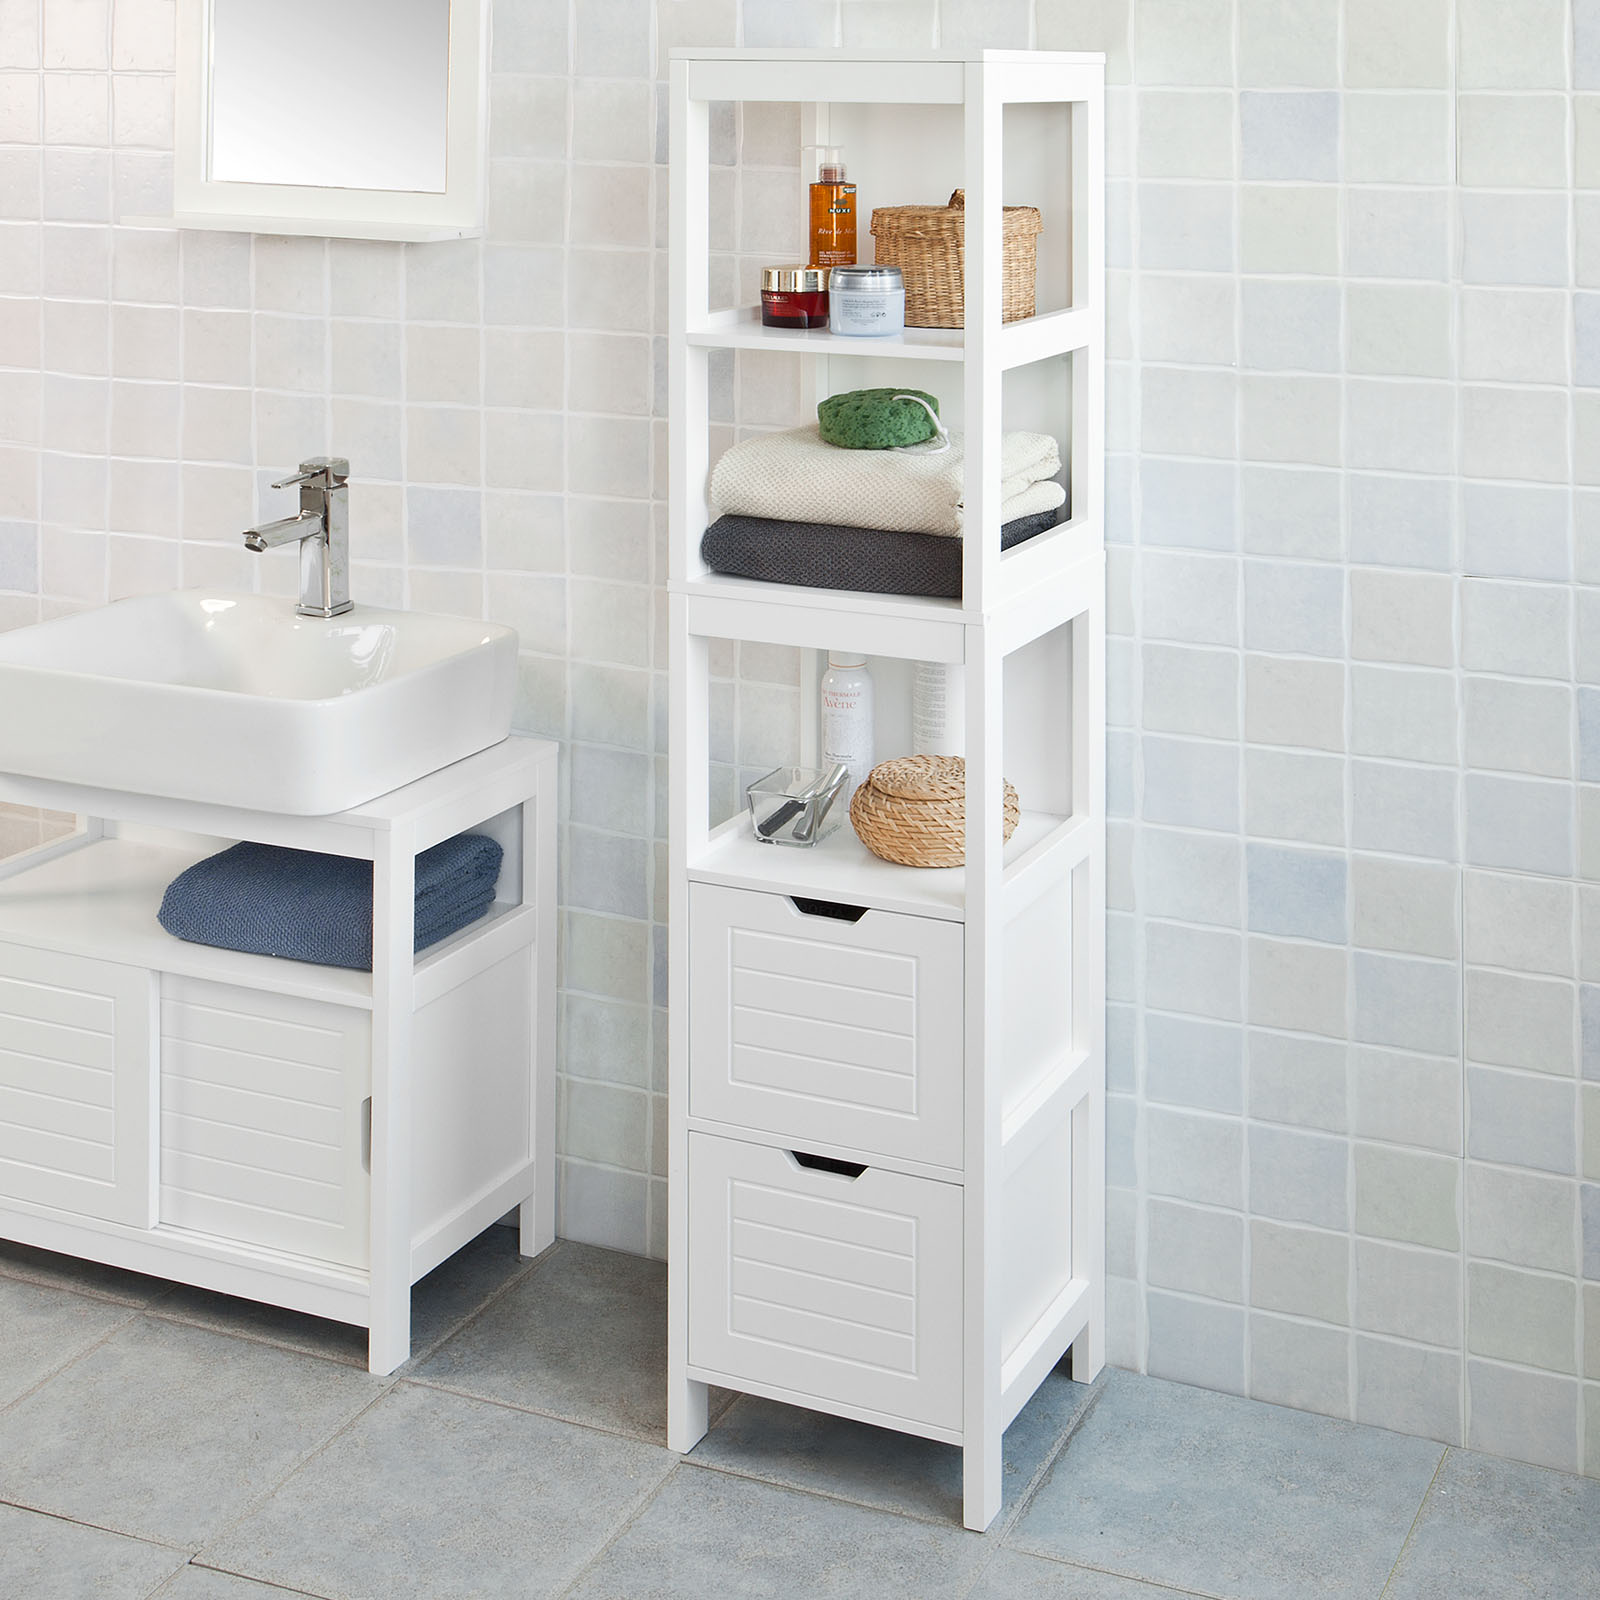 White Under Sink Bathroom Storage Cabinet haotian bathroom vanity set,white under sink bathroom storage